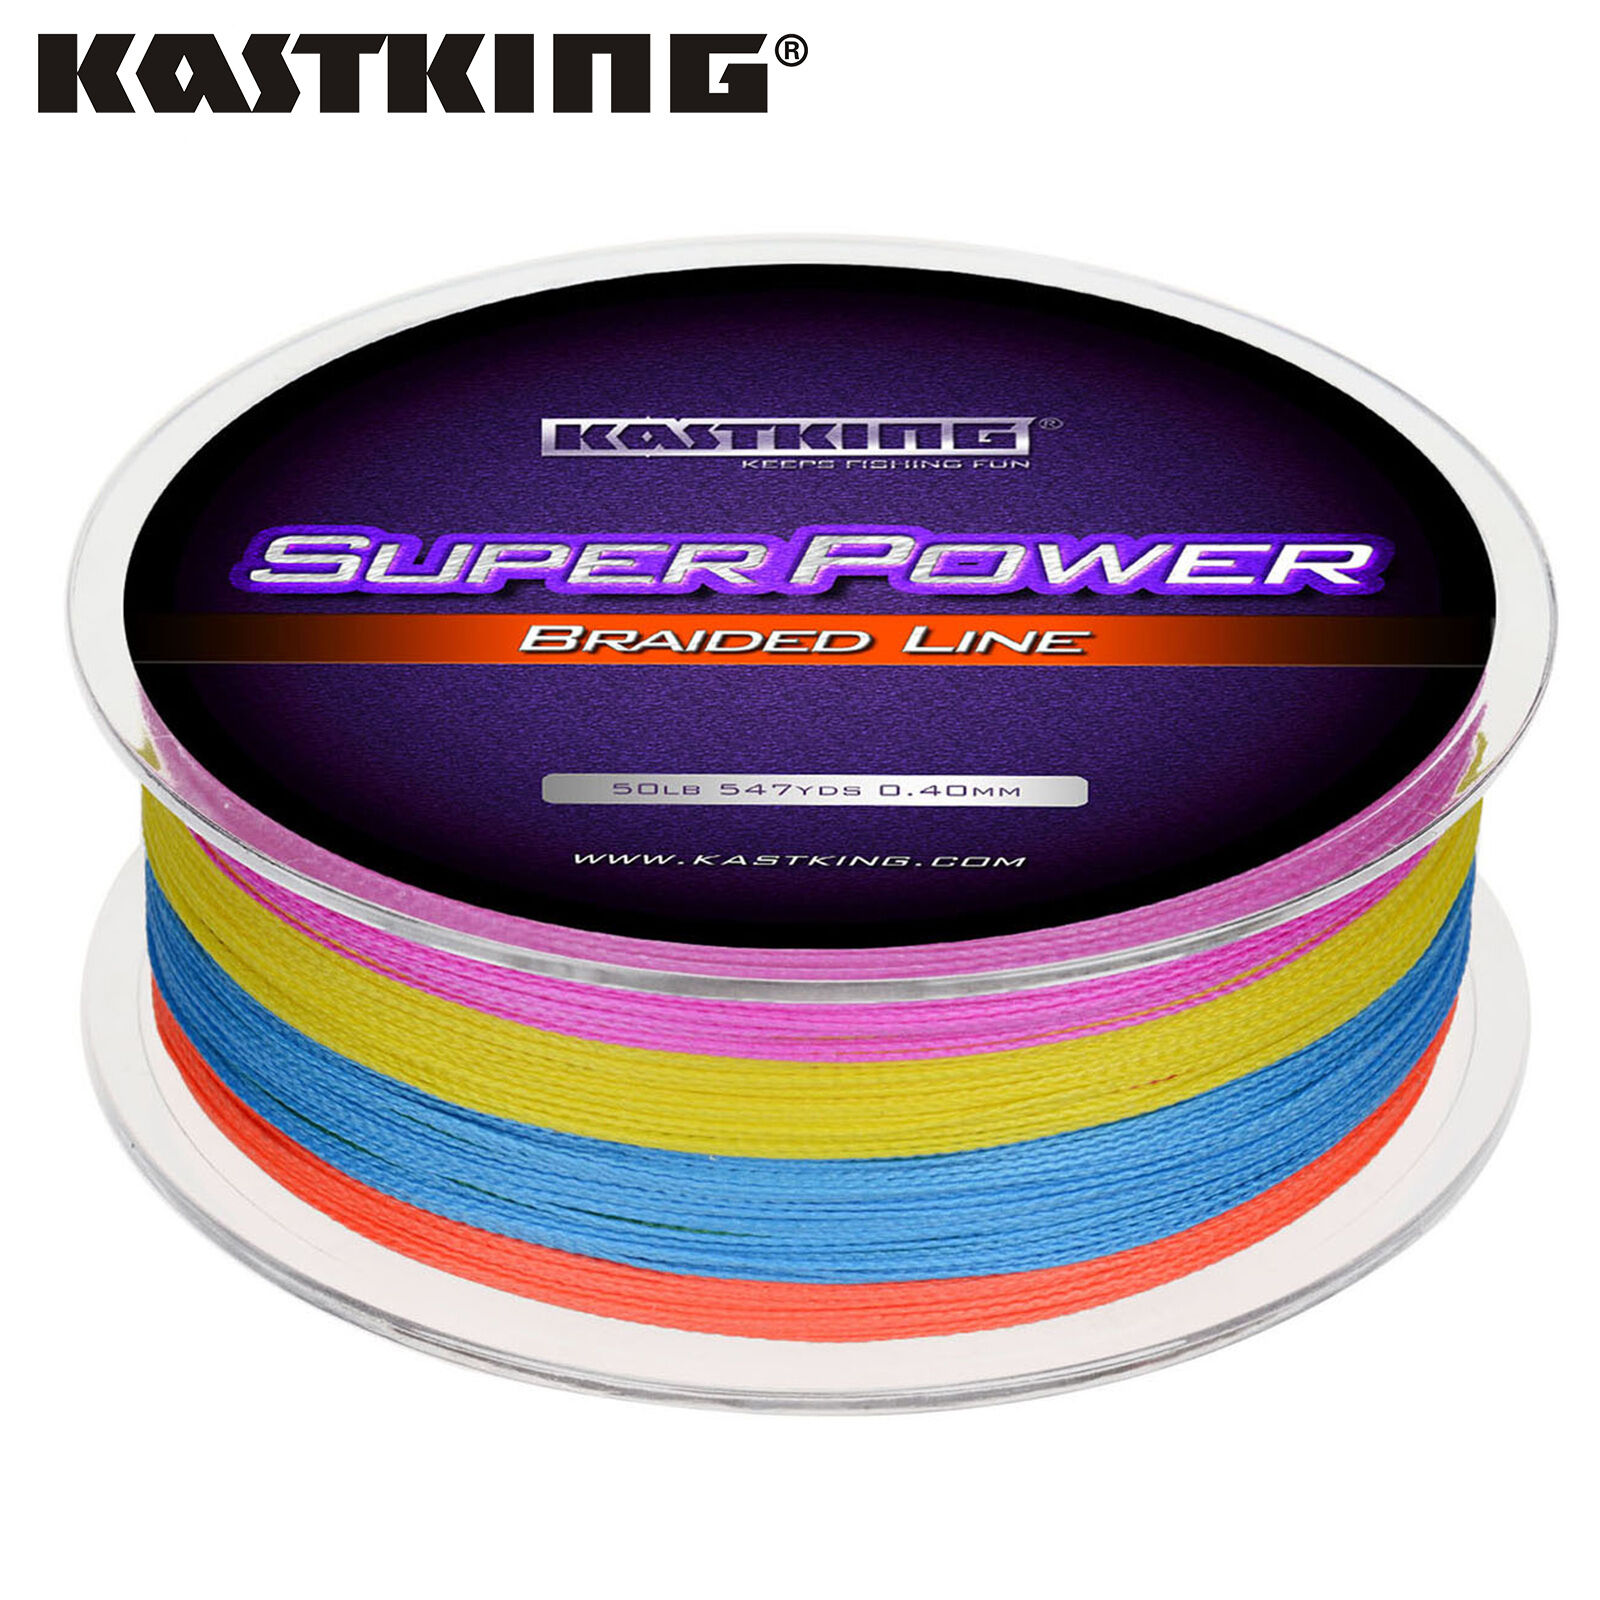 [UPGRADED] Kastre Superenergia Braided Fishing Line - Abrasion Resistant Braid